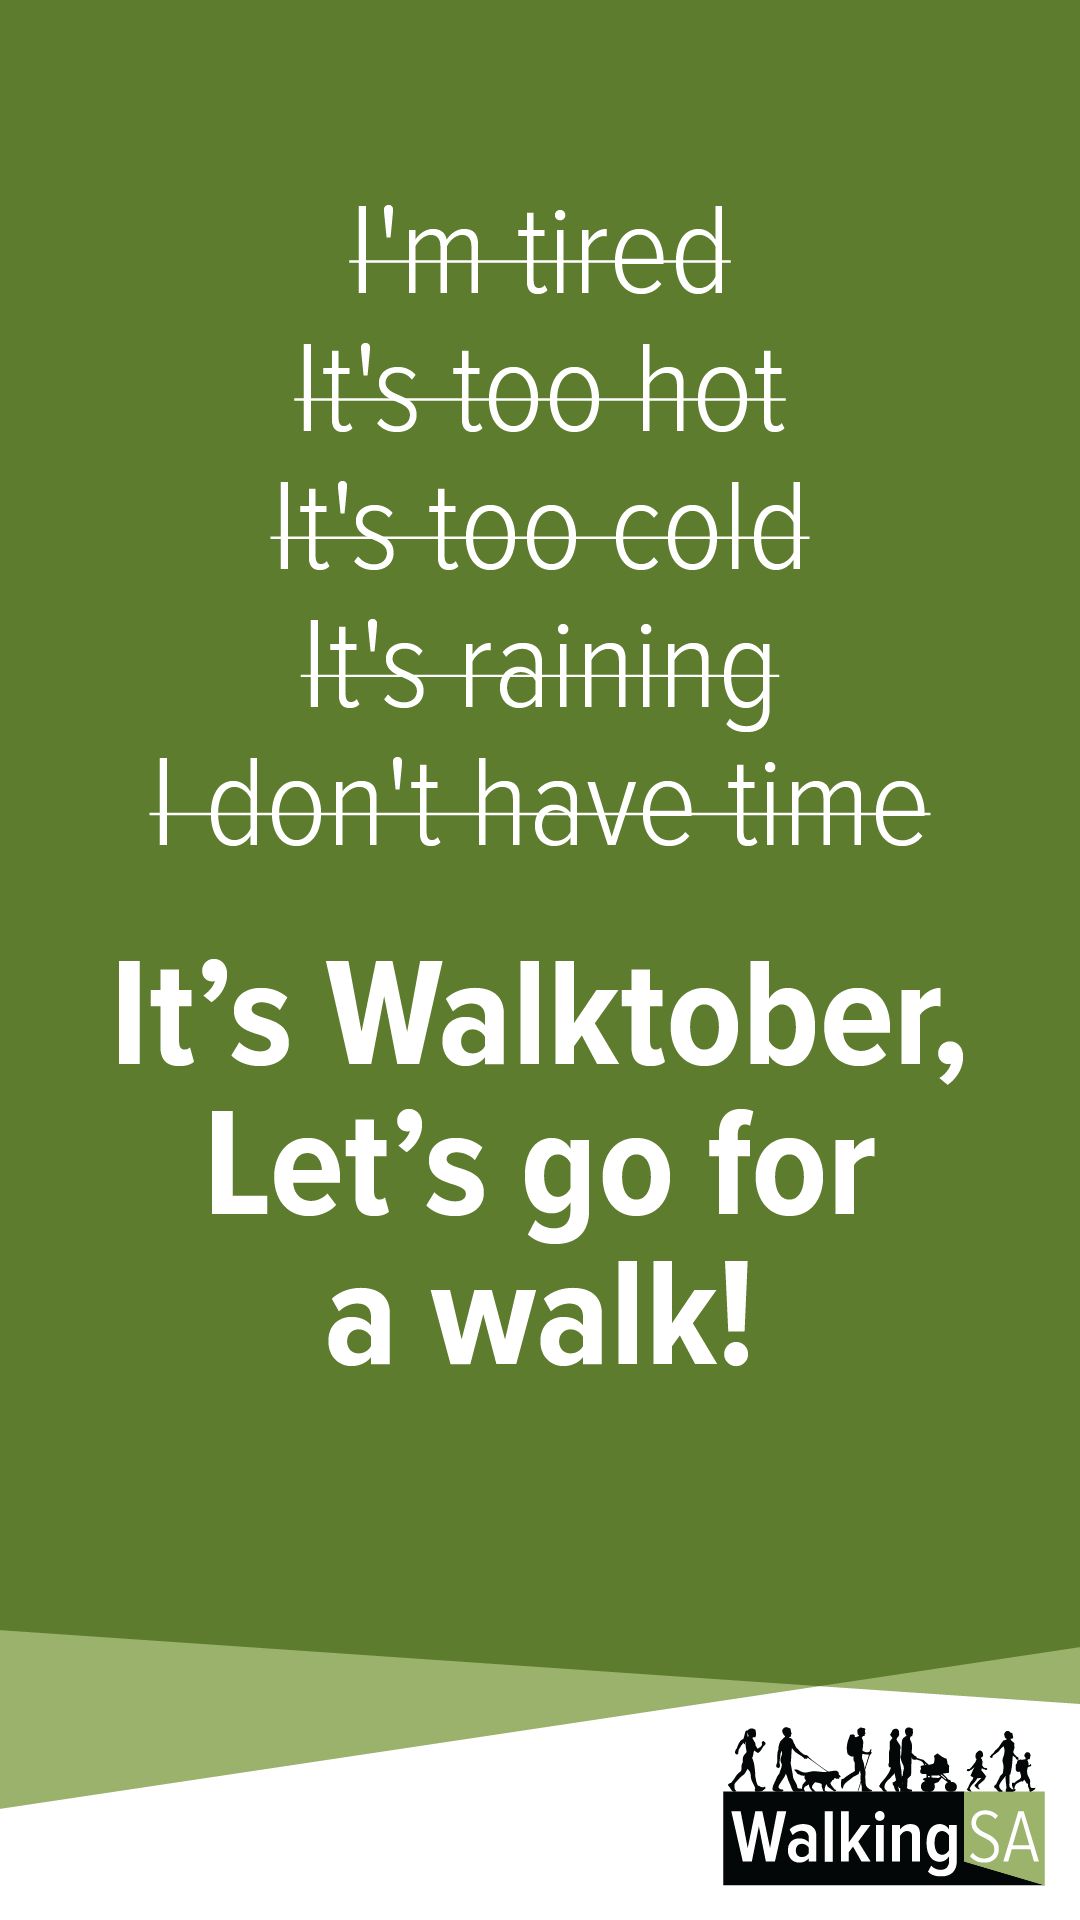 social media tile Square 1080px x 1900px: I'm tired, It's too hot, It's too cold, It's raining, I don't have time. It's Walktober, Let's go for a walk!